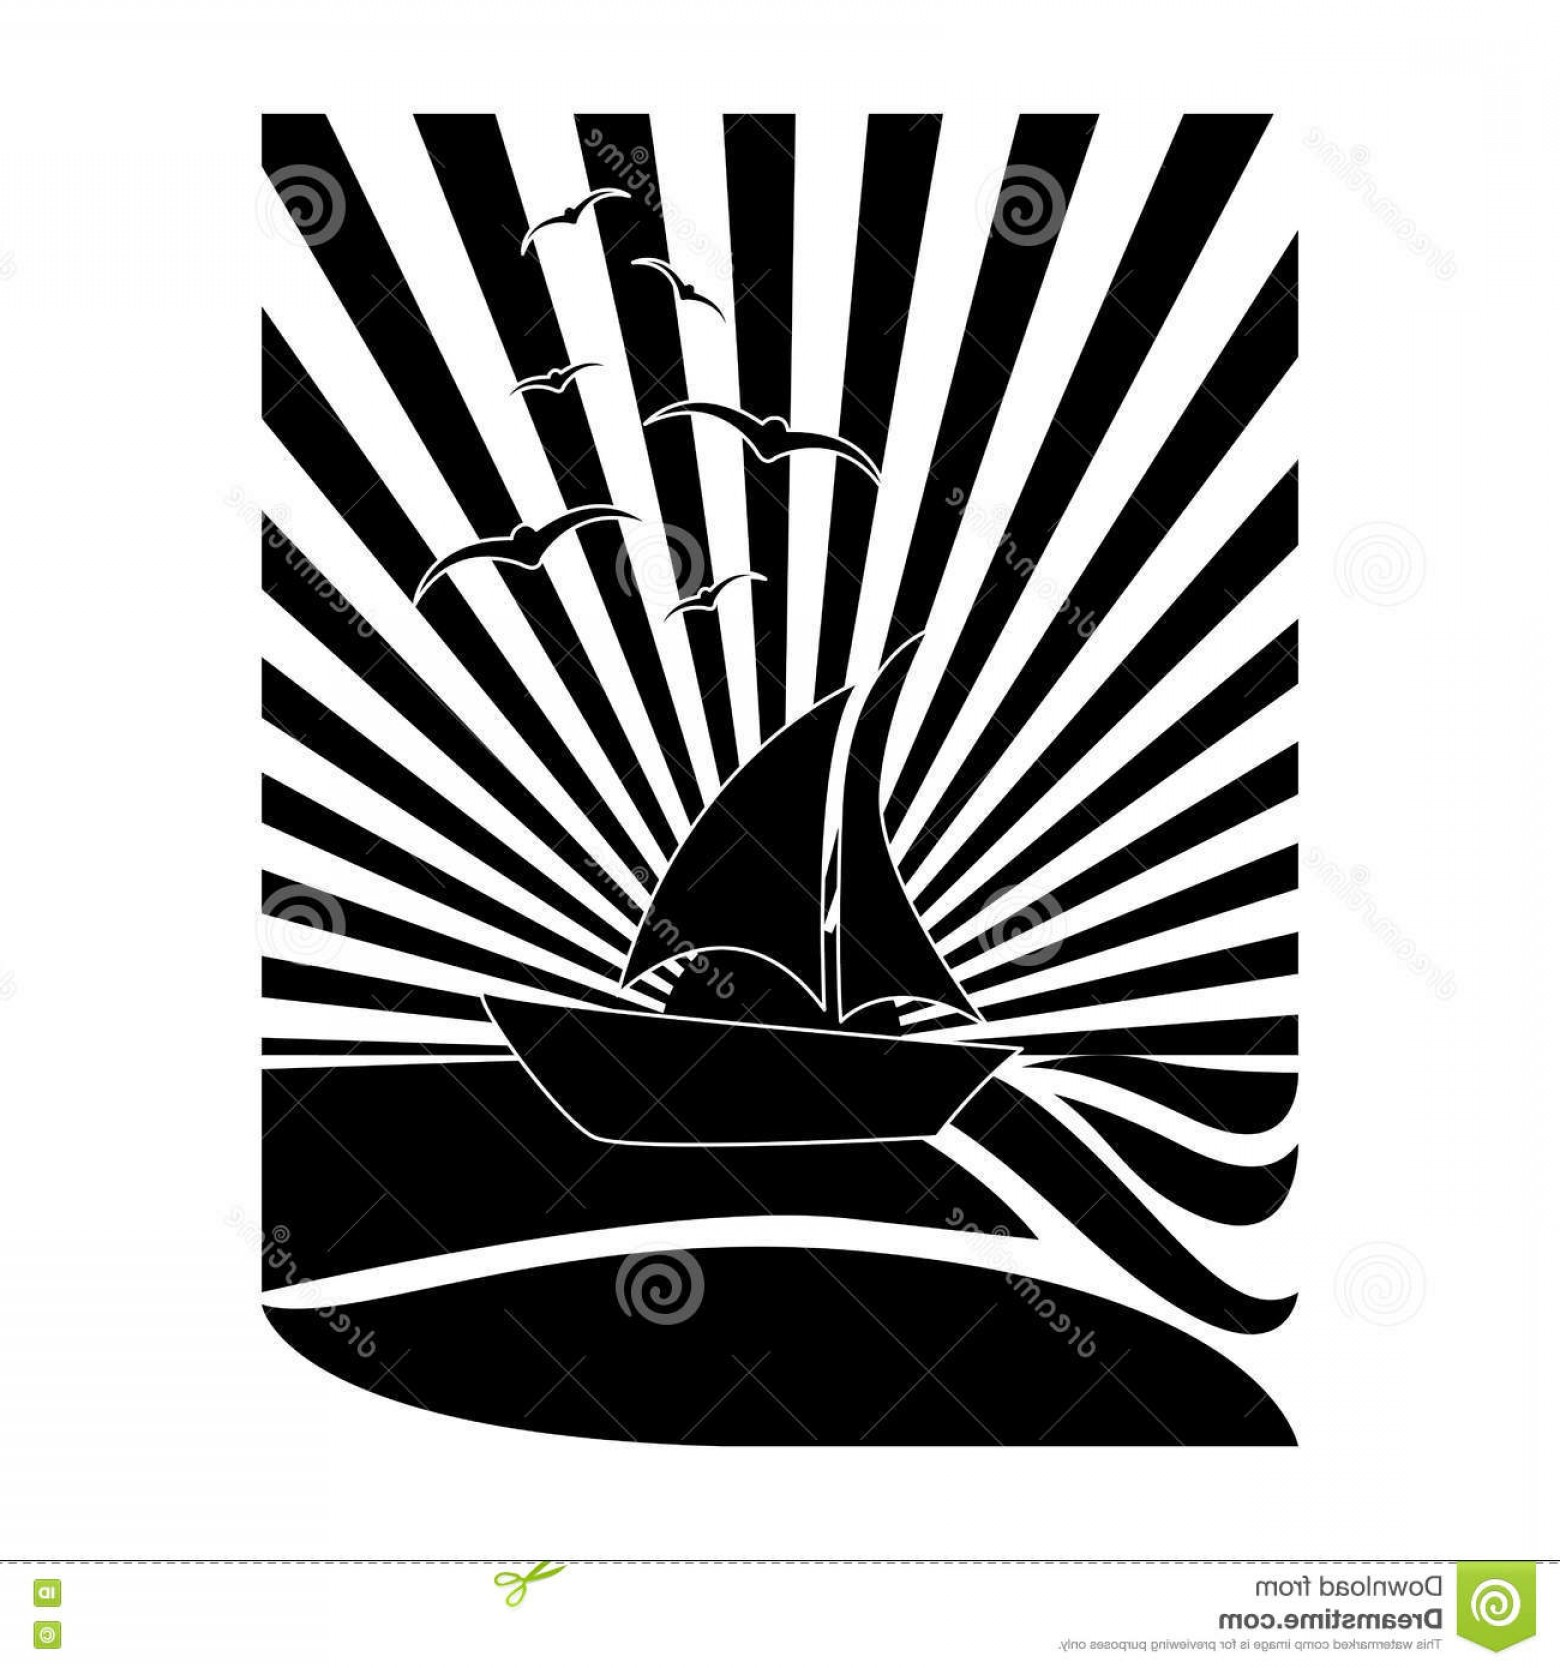 Sunset Black And White Backgrounds Vector: Stock Illustration Black White Tropical Sunset Icon Image Vector Illustration Design Image